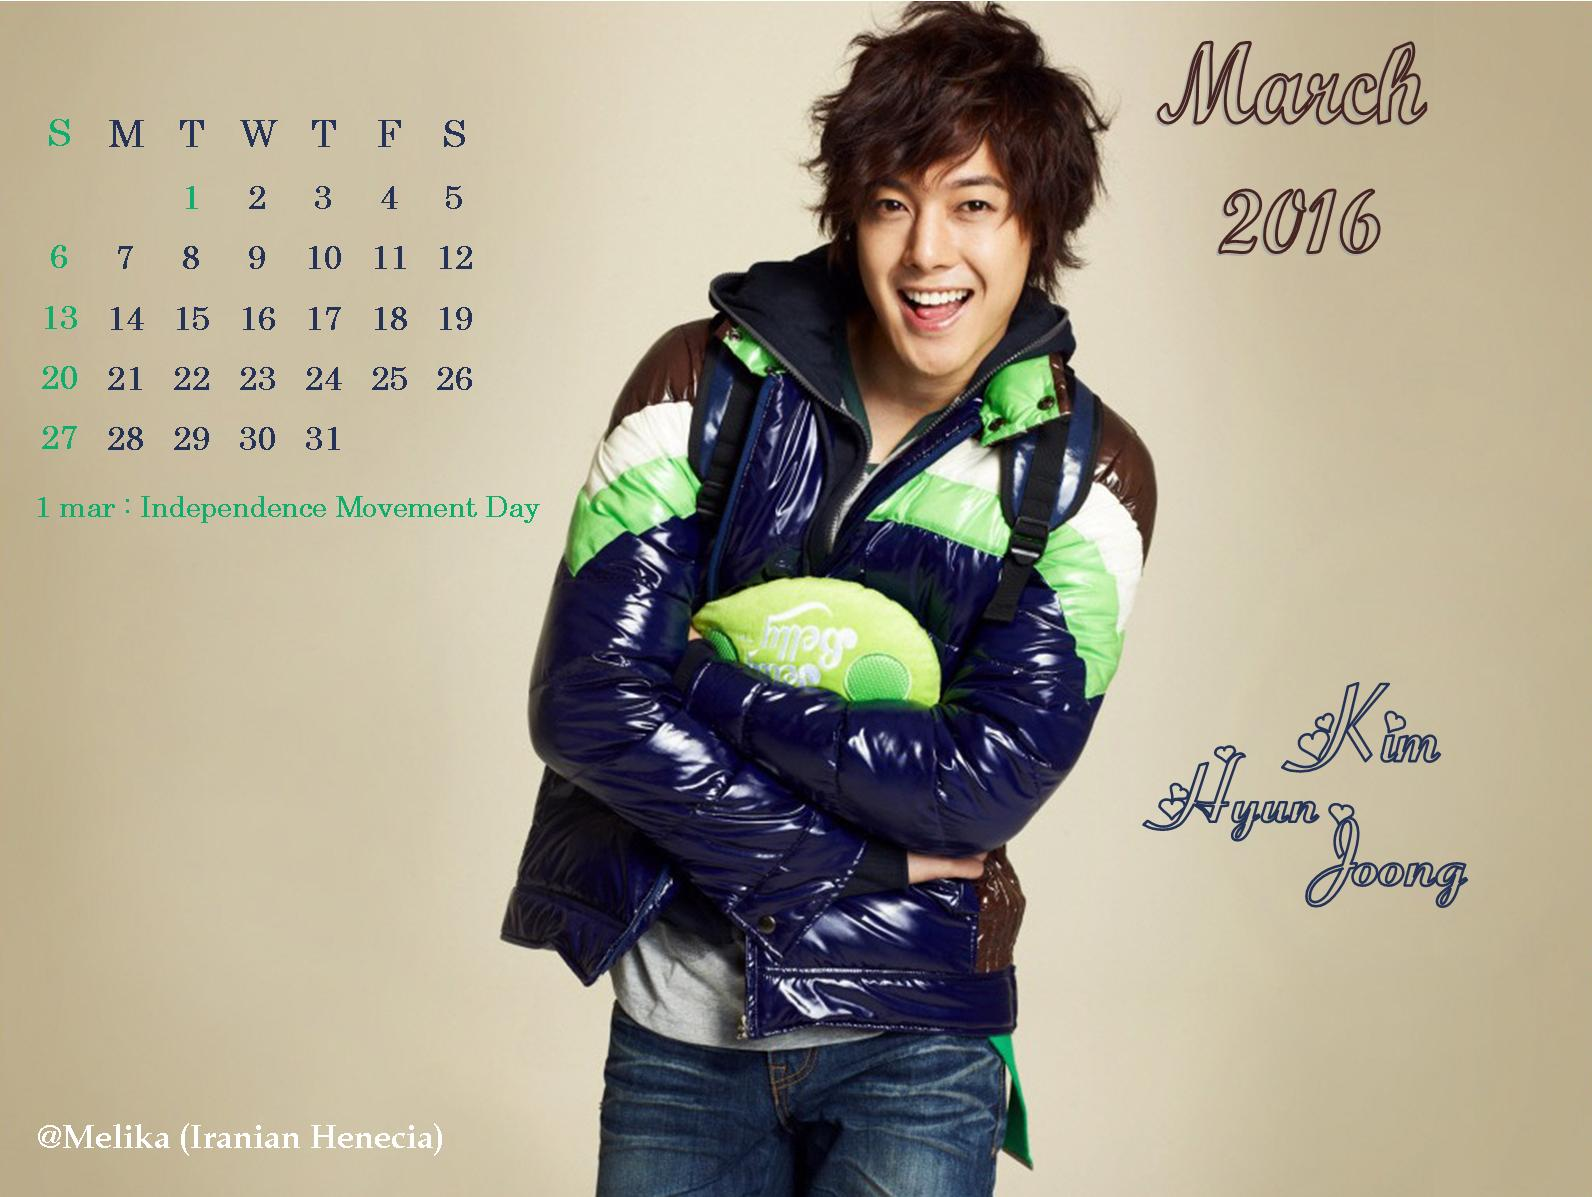 Calendar of March 2016 - Fanart by Melika